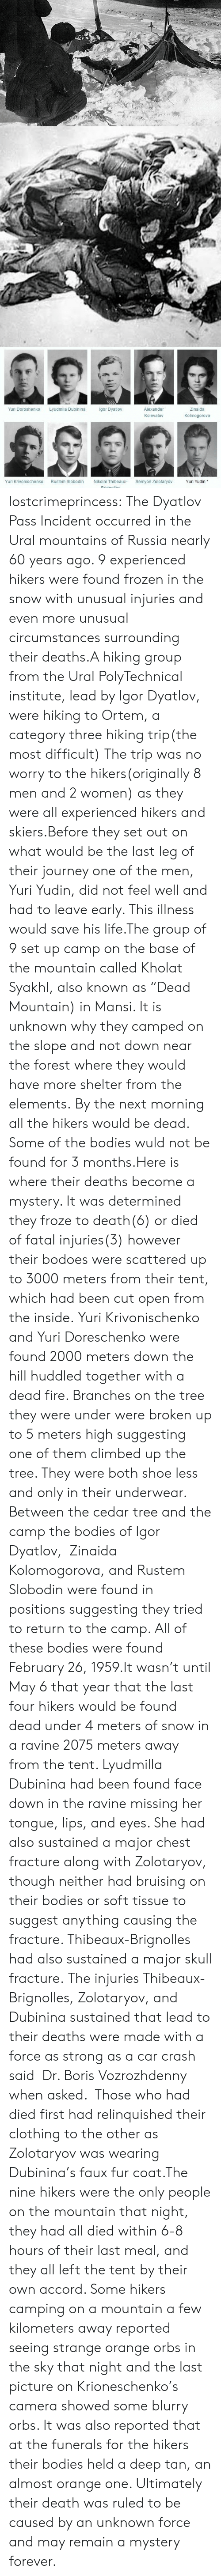 "accord: Yuri Doroshenko  Lyudmila Dubinina  gor Dyatlov  Alexander  Zinaida  Kolmogorova  Kolevatov  Yuri Krivonischenko  Rustem Slobodin  Nikolai Thibeaux-  Semyon Zolotaryov  Yuri Yudin* lostcrimeprincess:  The Dyatlov Pass Incident occurred in the Ural mountains of Russia nearly 60 years ago. 9 experienced hikers were found frozen in the snow with unusual injuries and even more unusual circumstances surrounding their deaths.A hiking group from the Ural PolyTechnical institute, lead by Igor Dyatlov, were hiking to Ortem, a category three hiking trip(the most difficult) The trip was no worry to the hikers(originally 8 men and 2 women) as they were all experienced hikers and skiers.Before they set out on what would be the last leg of their journey one of the men, Yuri Yudin, did not feel well and had to leave early. This illness would save his life.The group of 9 set up camp on the base of the mountain called Kholat Syakhl, also known as ""Dead Mountain) in Mansi. It is unknown why they camped on the slope and not down near the forest where they would have more shelter from the elements. By the next morning all the hikers would be dead. Some of the bodies wuld not be found for 3 months.Here is where their deaths become a mystery. It was determined they froze to death(6) or died of fatal injuries(3) however their bodoes were scattered up to 3000 meters from their tent, which had been cut open from the inside. Yuri Krivonischenko and Yuri Doreschenko were found 2000 meters down the hill huddled together with a dead fire. Branches on the tree they were under were broken up to 5 meters high suggesting one of them climbed up the tree. They were both shoe less and only in their underwear. Between the cedar tree and the camp the bodies of Igor Dyatlov,  Zinaida Kolomogorova, and Rustem Slobodin were found in positions suggesting they tried to return to the camp. All of these bodies were found February 26, 1959.It wasn't until May 6 that year that the last four hikers would be found dead under 4 meters of snow in a ravine 2075 meters away from the tent. Lyudmilla Dubinina had been found face down in the ravine missing her tongue, lips, and eyes. She had also sustained a major chest fracture along with Zolotaryov, though neither had bruising on their bodies or soft tissue to suggest anything causing the fracture.   Thibeaux-Brignolles had also sustained a major skull fracture.  The injuries Thibeaux-Brignolles, Zolotaryov, and Dubinina sustained that lead to their deaths were made with a force as strong as a car crash said  Dr. Boris Vozrozhdenny when asked.     Those who had died first had relinquished their clothing to the other as    Zolotaryov was wearing Dubinina's faux fur coat.The nine hikers were the only people on the mountain that night, they had all died within 6-8 hours of their last meal, and they all left the tent by their own accord. Some hikers camping on a mountain a few kilometers away reported seeing strange orange orbs in the sky that night and the last picture on Krioneschenko's camera showed some blurry orbs. It was also reported that at the funerals for the hikers their bodies held a deep tan, an almost orange one. Ultimately their death was ruled to be caused by an unknown force and may remain a mystery forever."